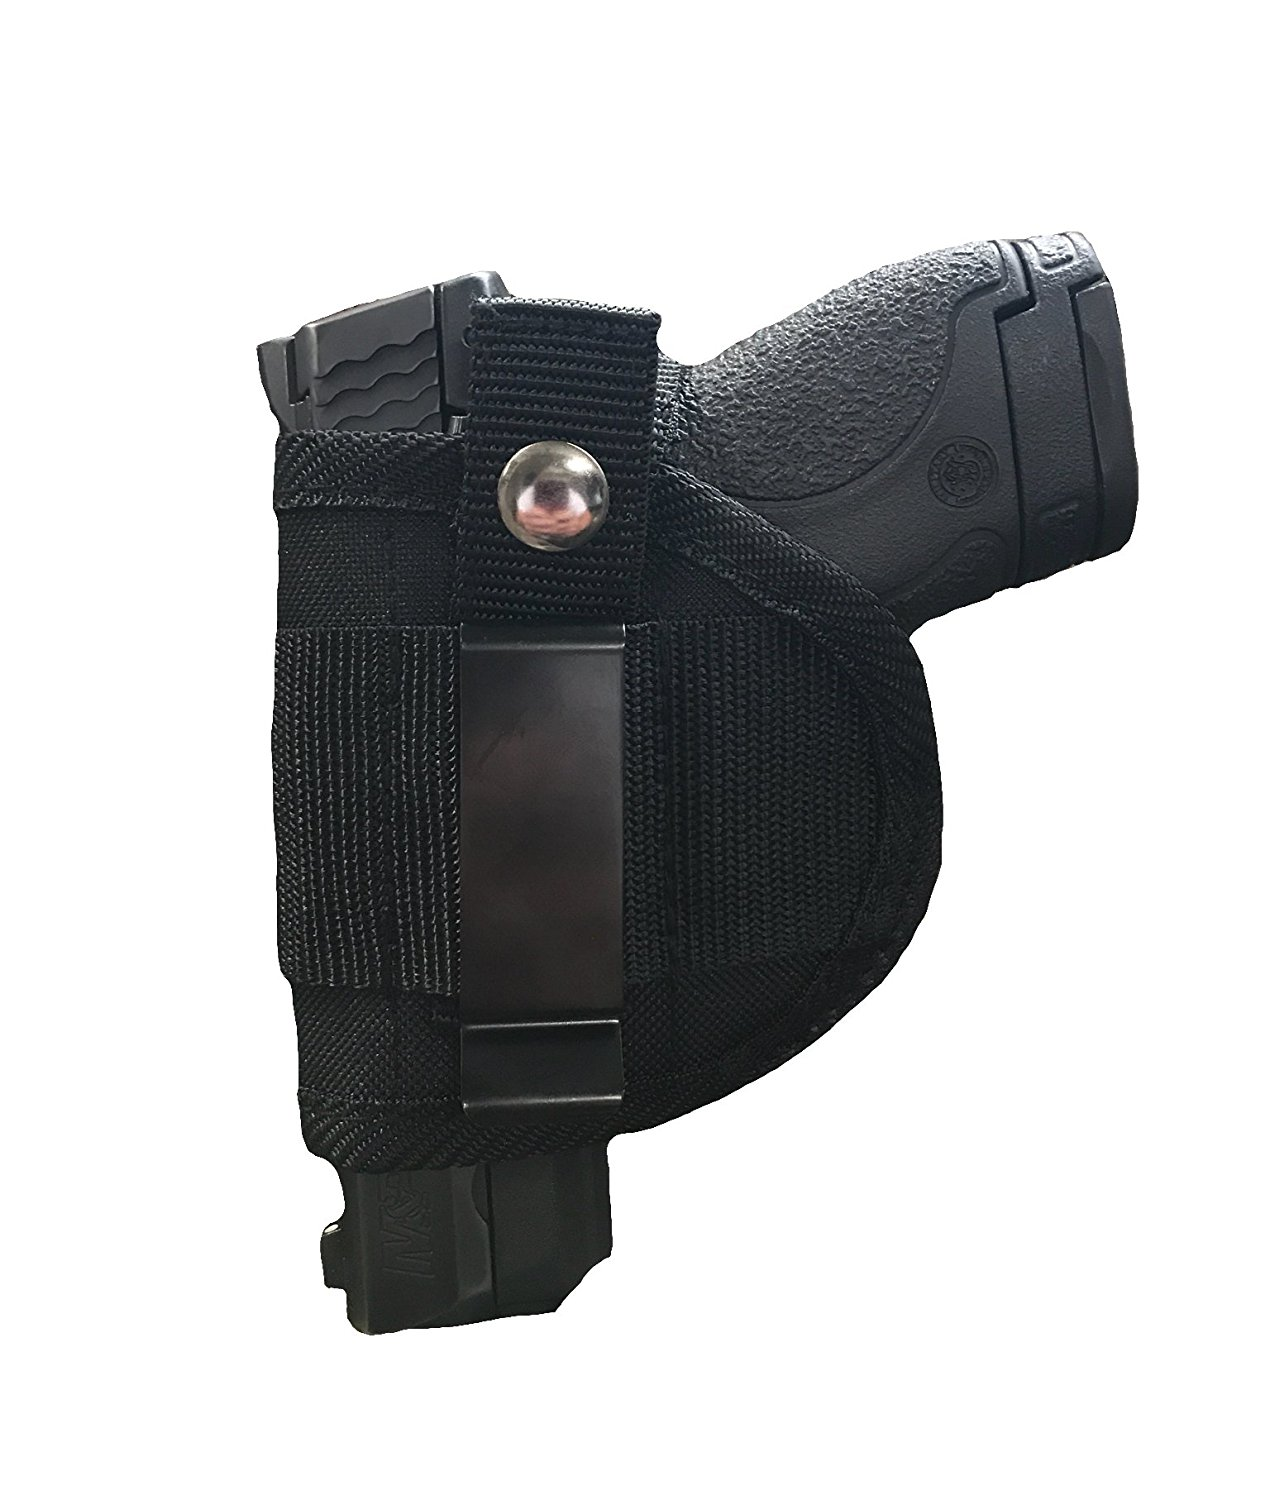 Concealed Deluxe inside the pants IWB Gun Holster Fits GLOCK 42, 43